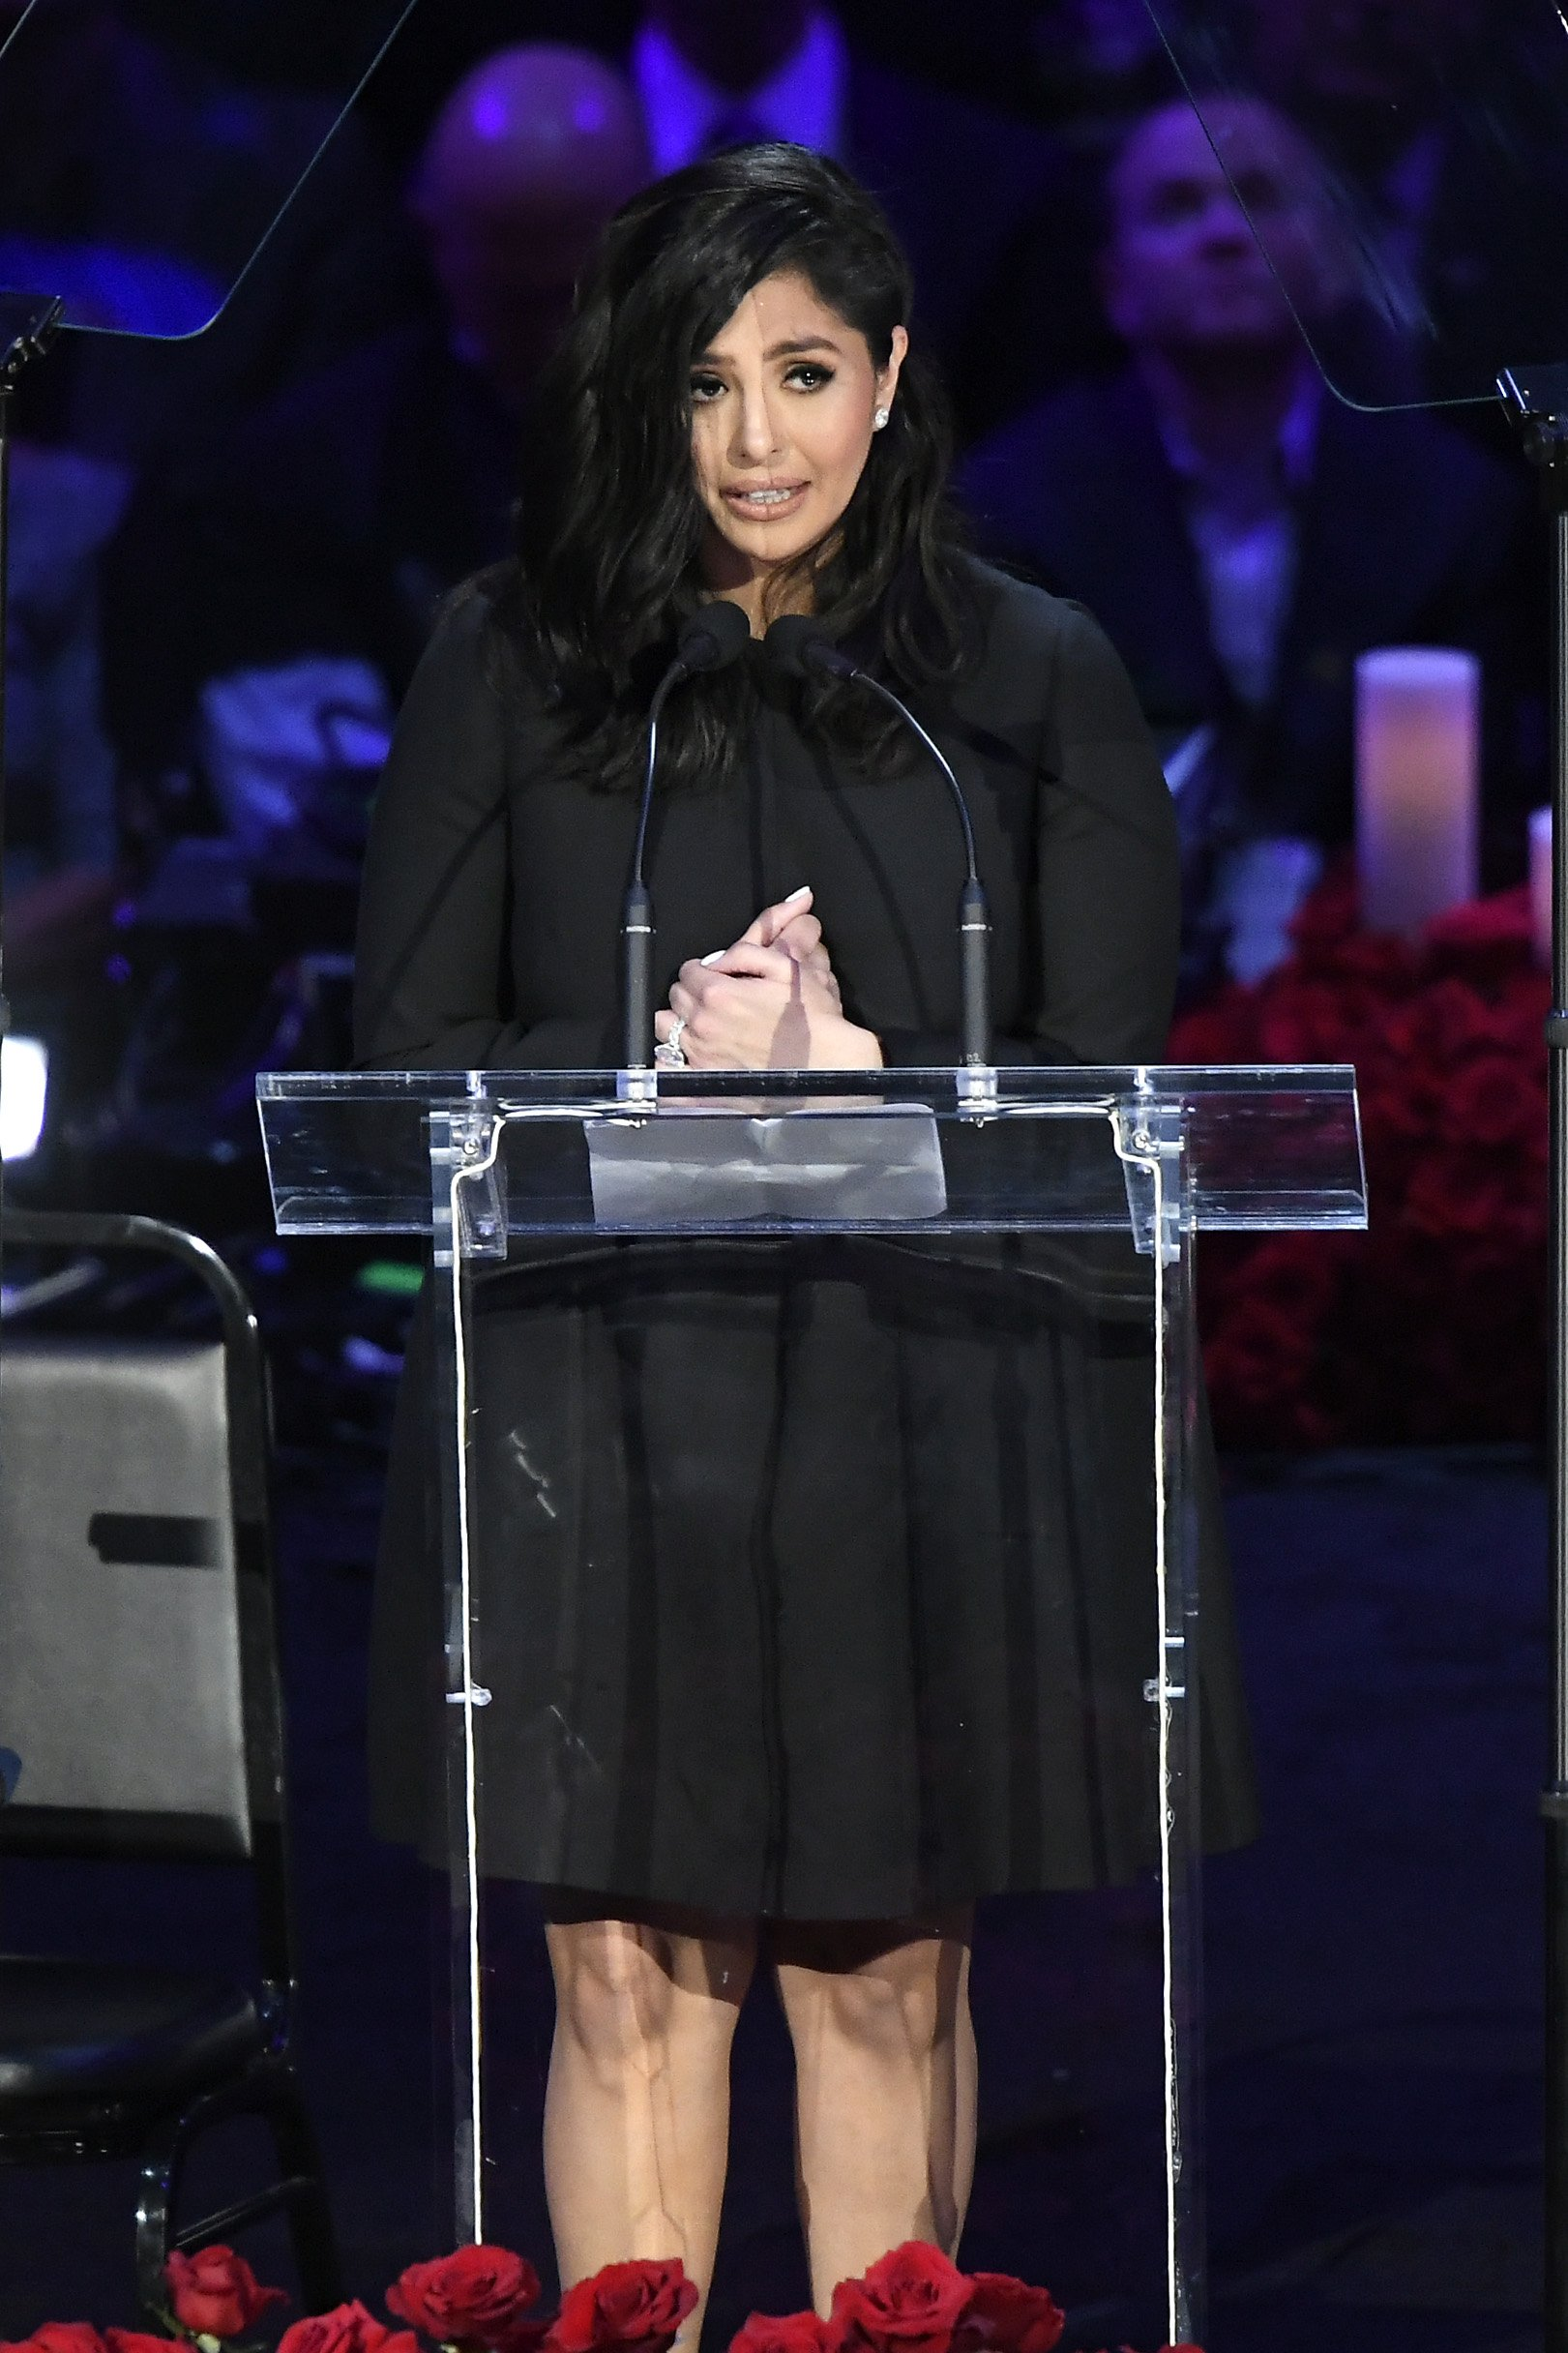 Vanessa Bryant speaking at The Celebration of Life for Kobe & Gianna Bryant at Staples Center on February 24, 2020 in Los Angeles, California | Photo: Kevork Djansezian/Getty Images